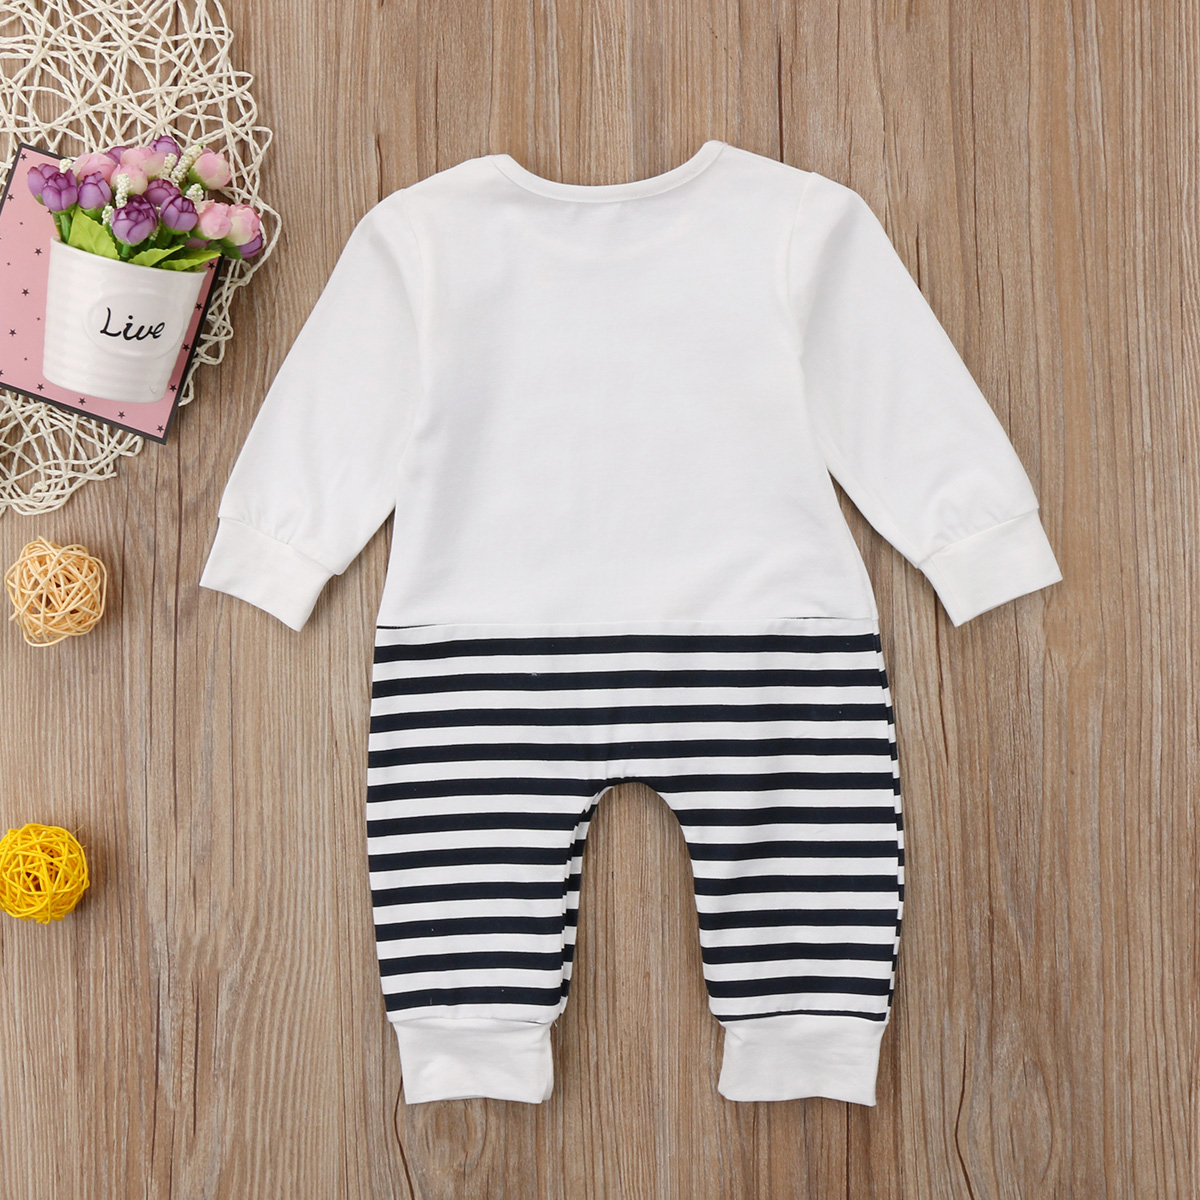 101e846842c4 White Elephant Striped Cotton Adorable Kids Baby Girls Boys Romper Jumpsuit  Outfits Playsuit Clothes-in Rompers from Mother   Kids on Aliexpress.com ...